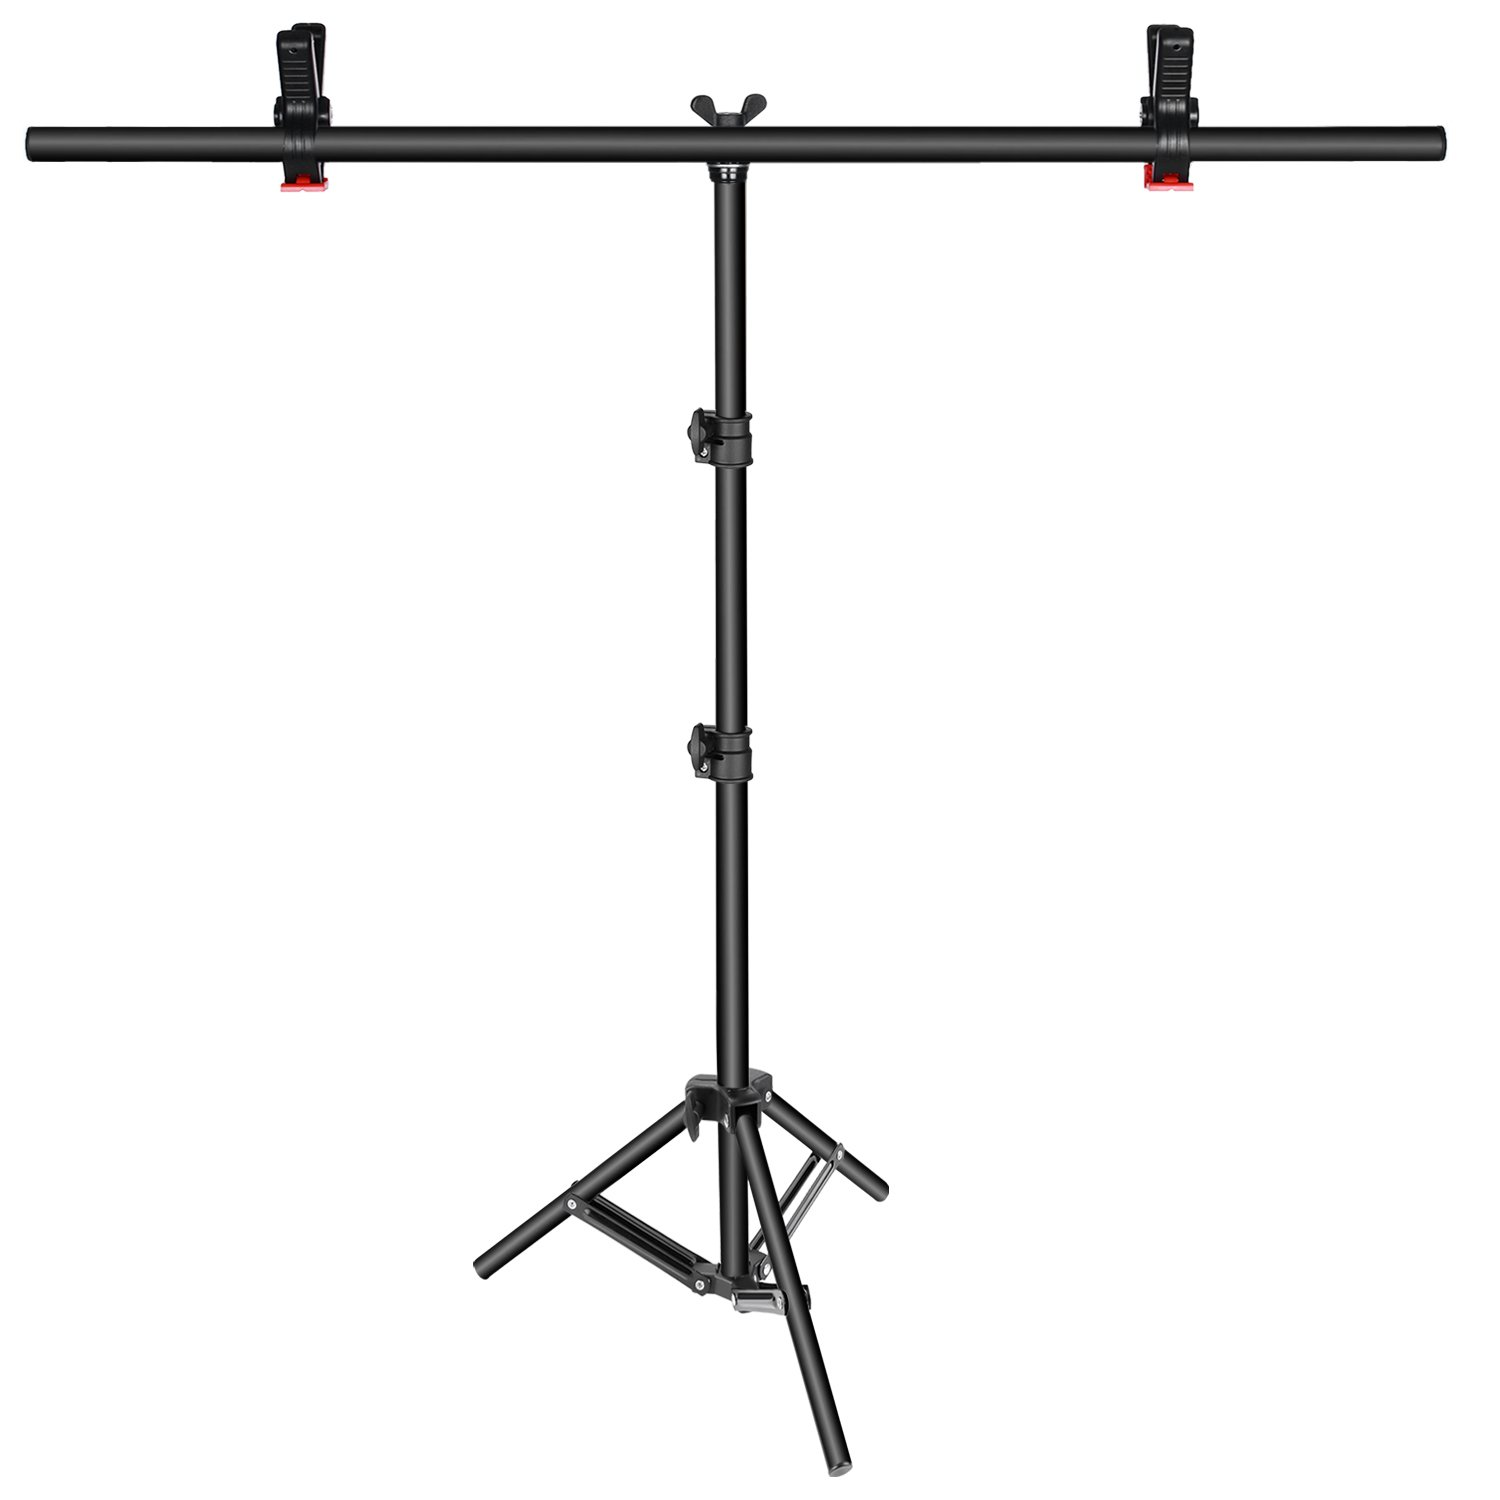 Neewer T-shape Background Backdrop Support Stand Kit: 32-80 inches/81-203 centimeters Adjustable Tripod Stand and 35.4 inches/90 centimeters Crossbar with 2 Tight Clamps for Video Studio Photography by Neewer